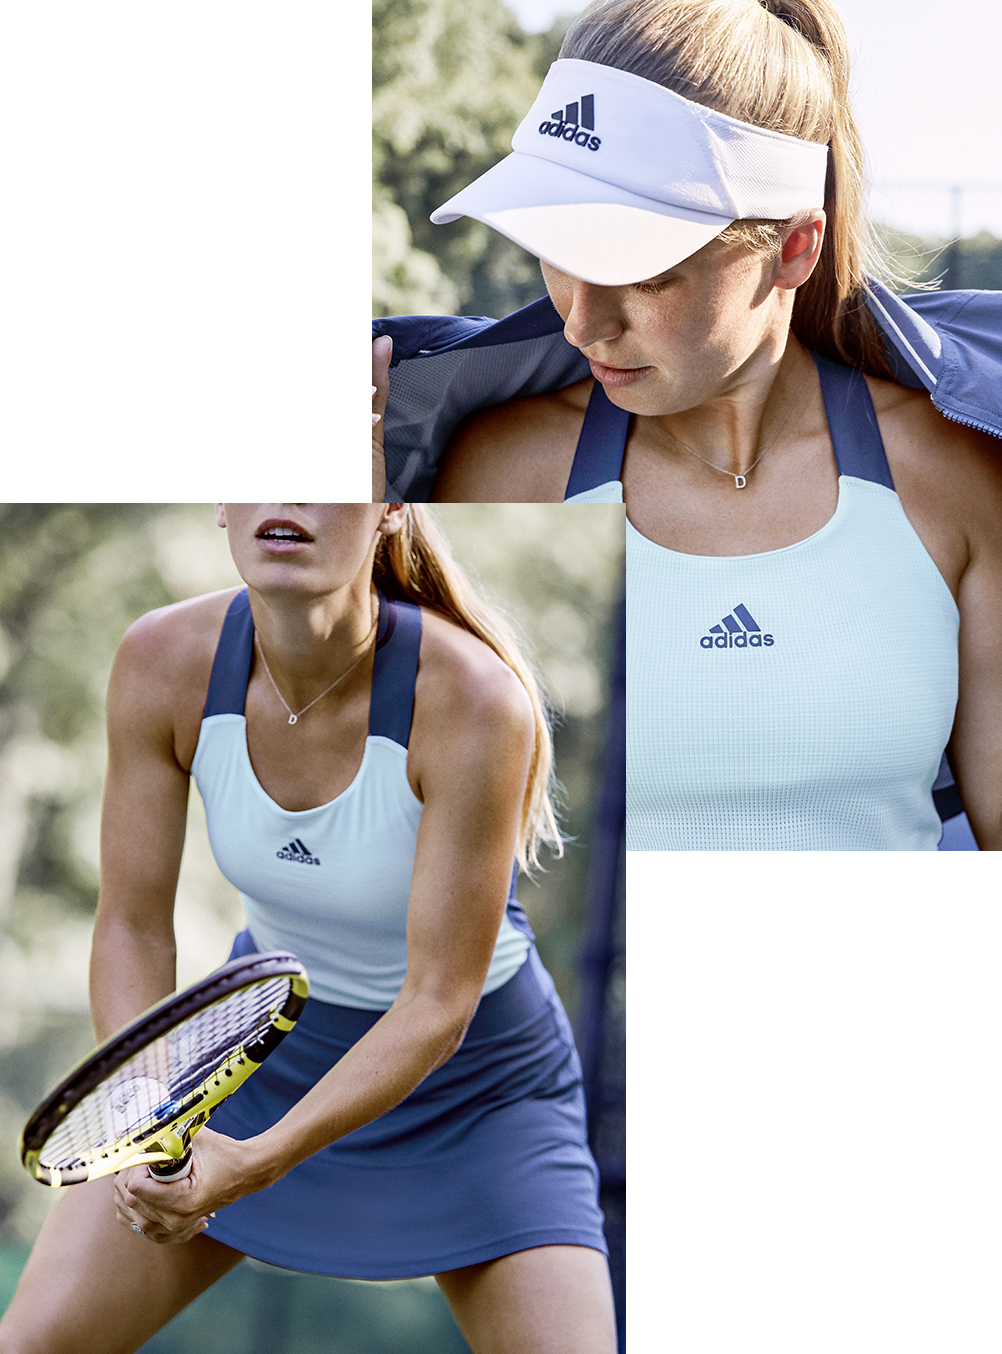 Buy adidas melbourne styles 2020 online